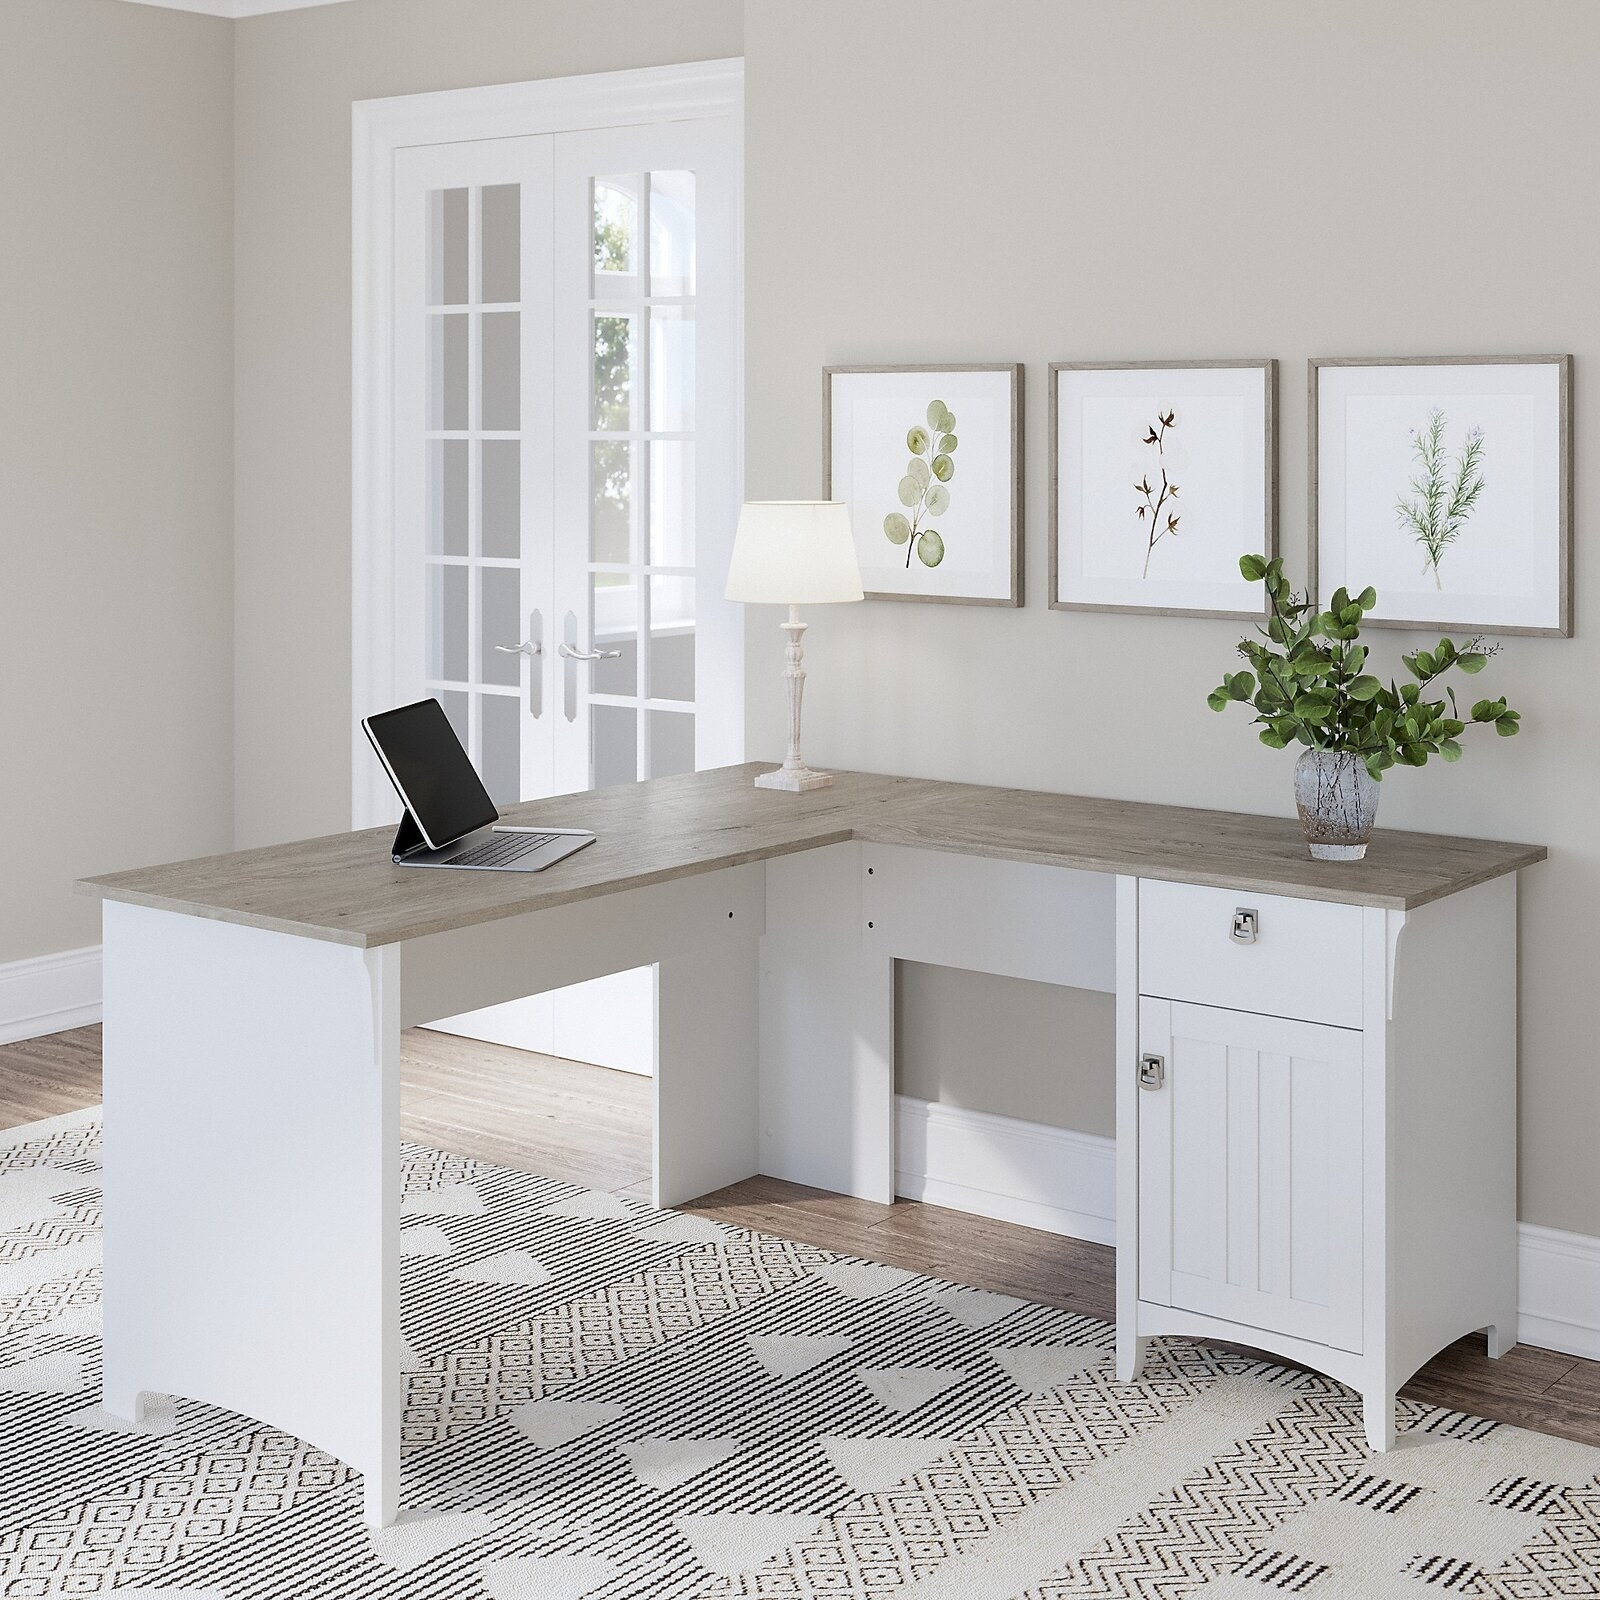 The desk, which is L-shaped and has a cabinet/ drawer storage area in one leg, in white